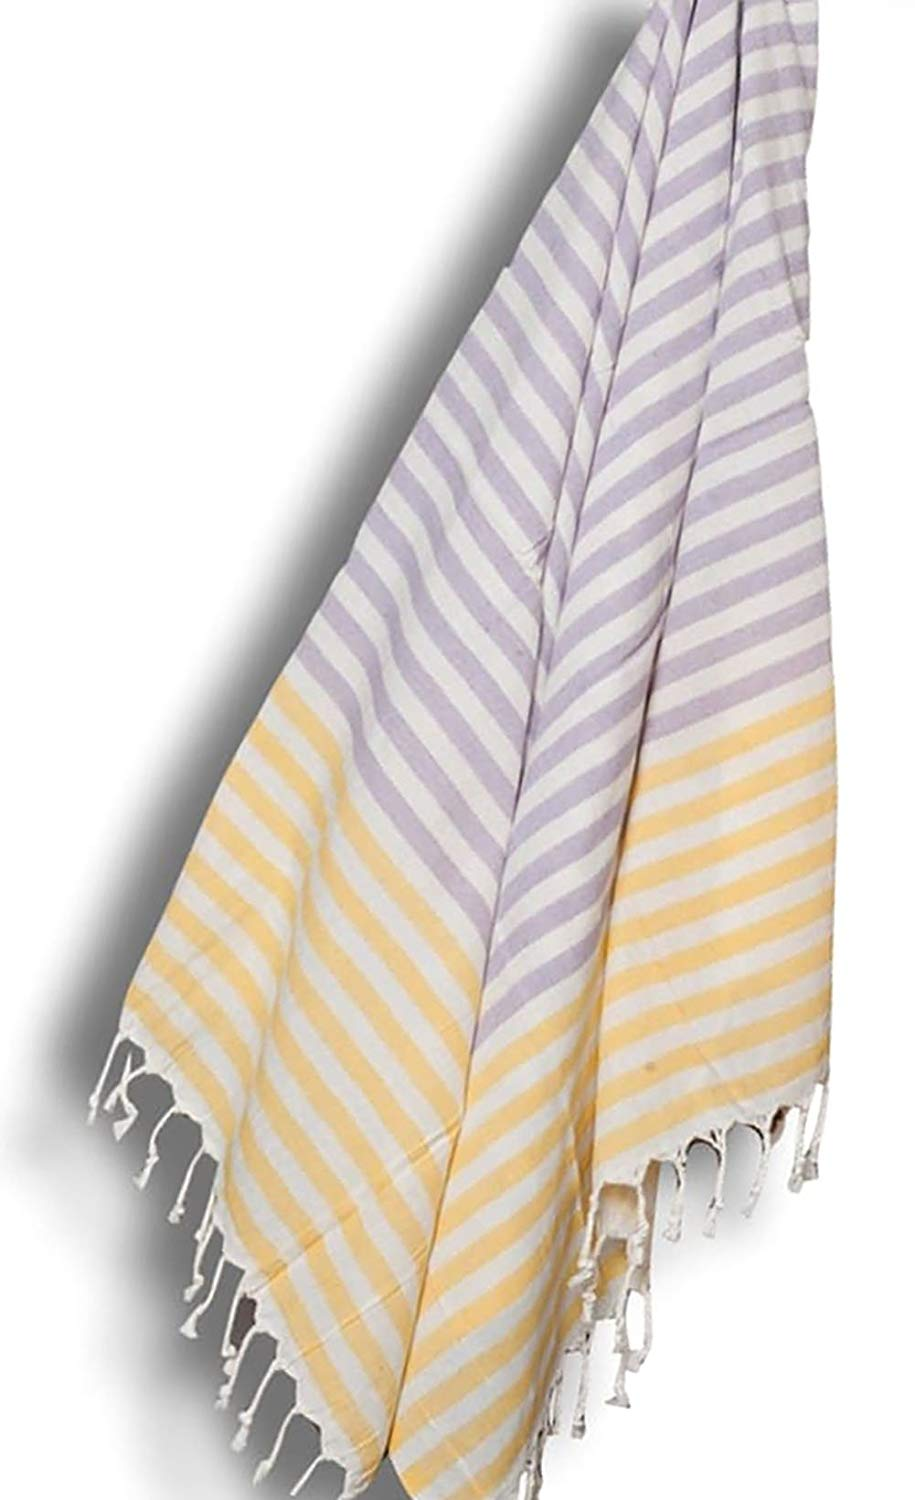 "Custom & Luxurious {30"" x 60"" Inch} 1 Single Large & Thin Soft Summer Beach & Bath Towels Made of Quick-Dry Cotton w/ Tropical Lilac Dandelion Turkish Lounging Vacation Souvenir Style [Multicolor]"